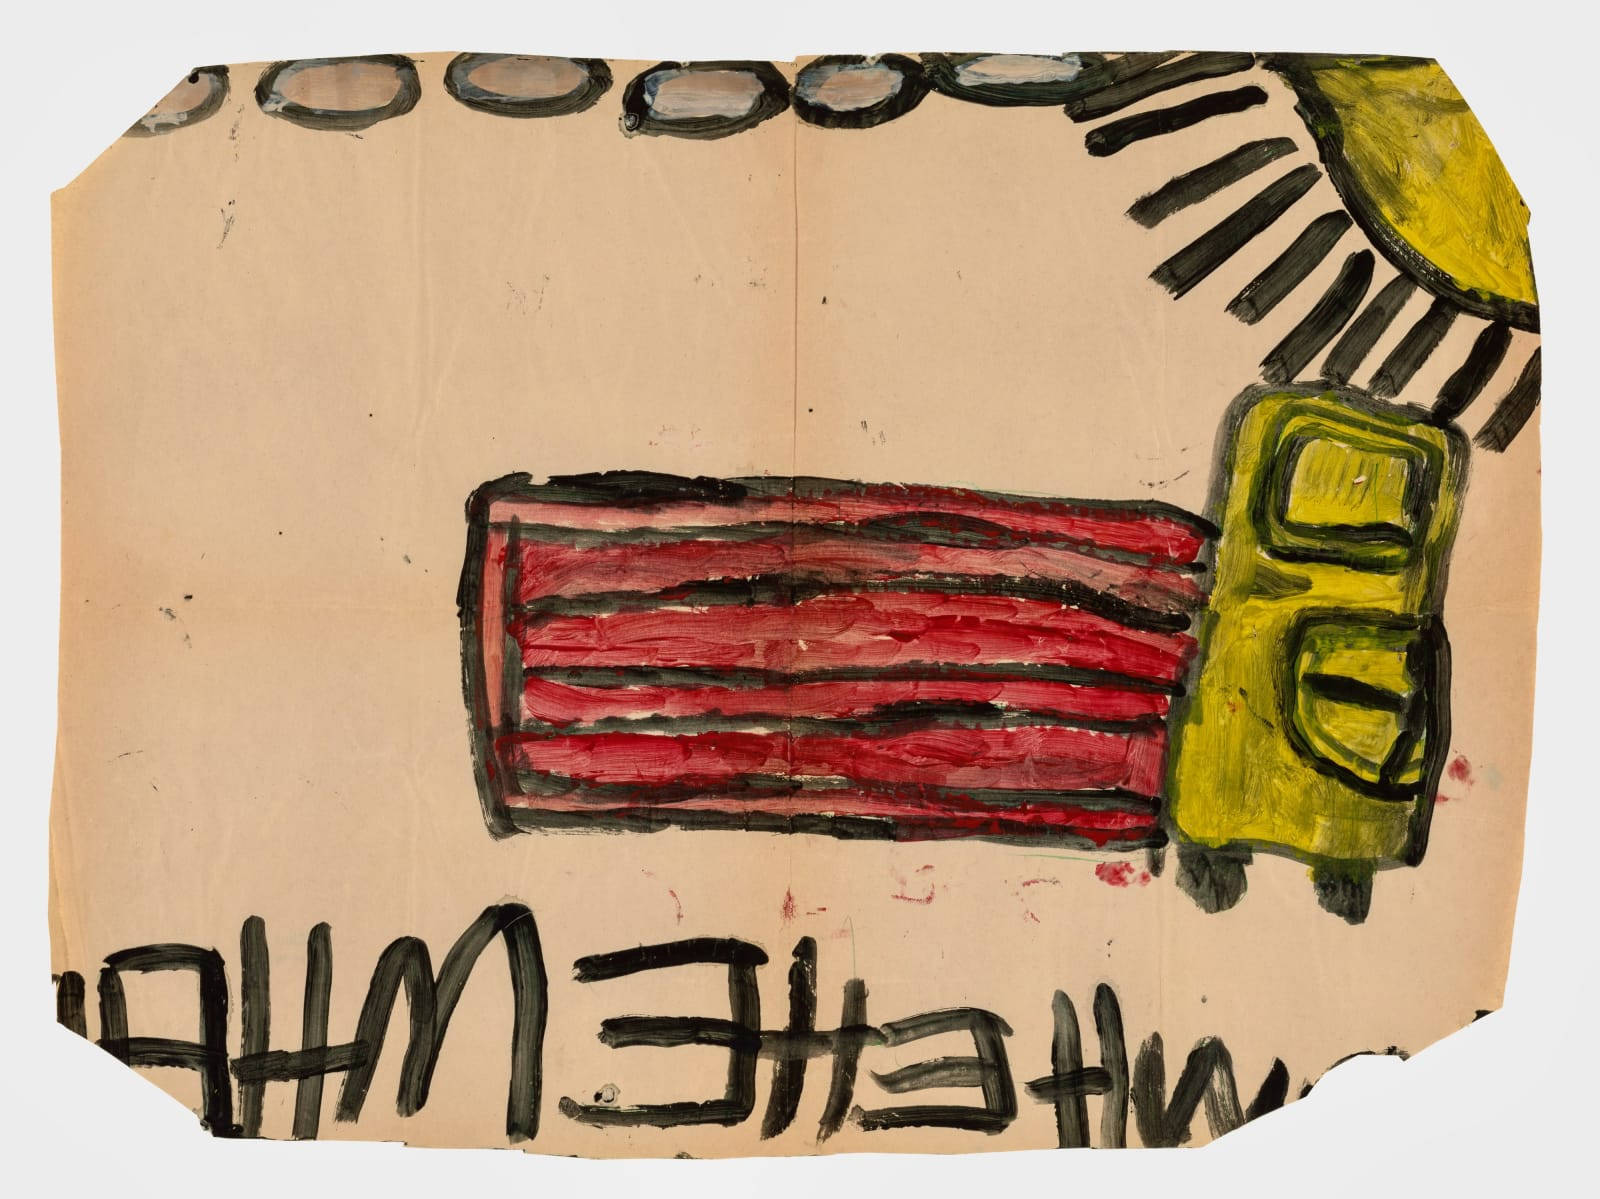 Untitled, 1972-1980 Tempera on paper 21 x 28.5 in (53.3 x 72.4 cm) (LM 410)